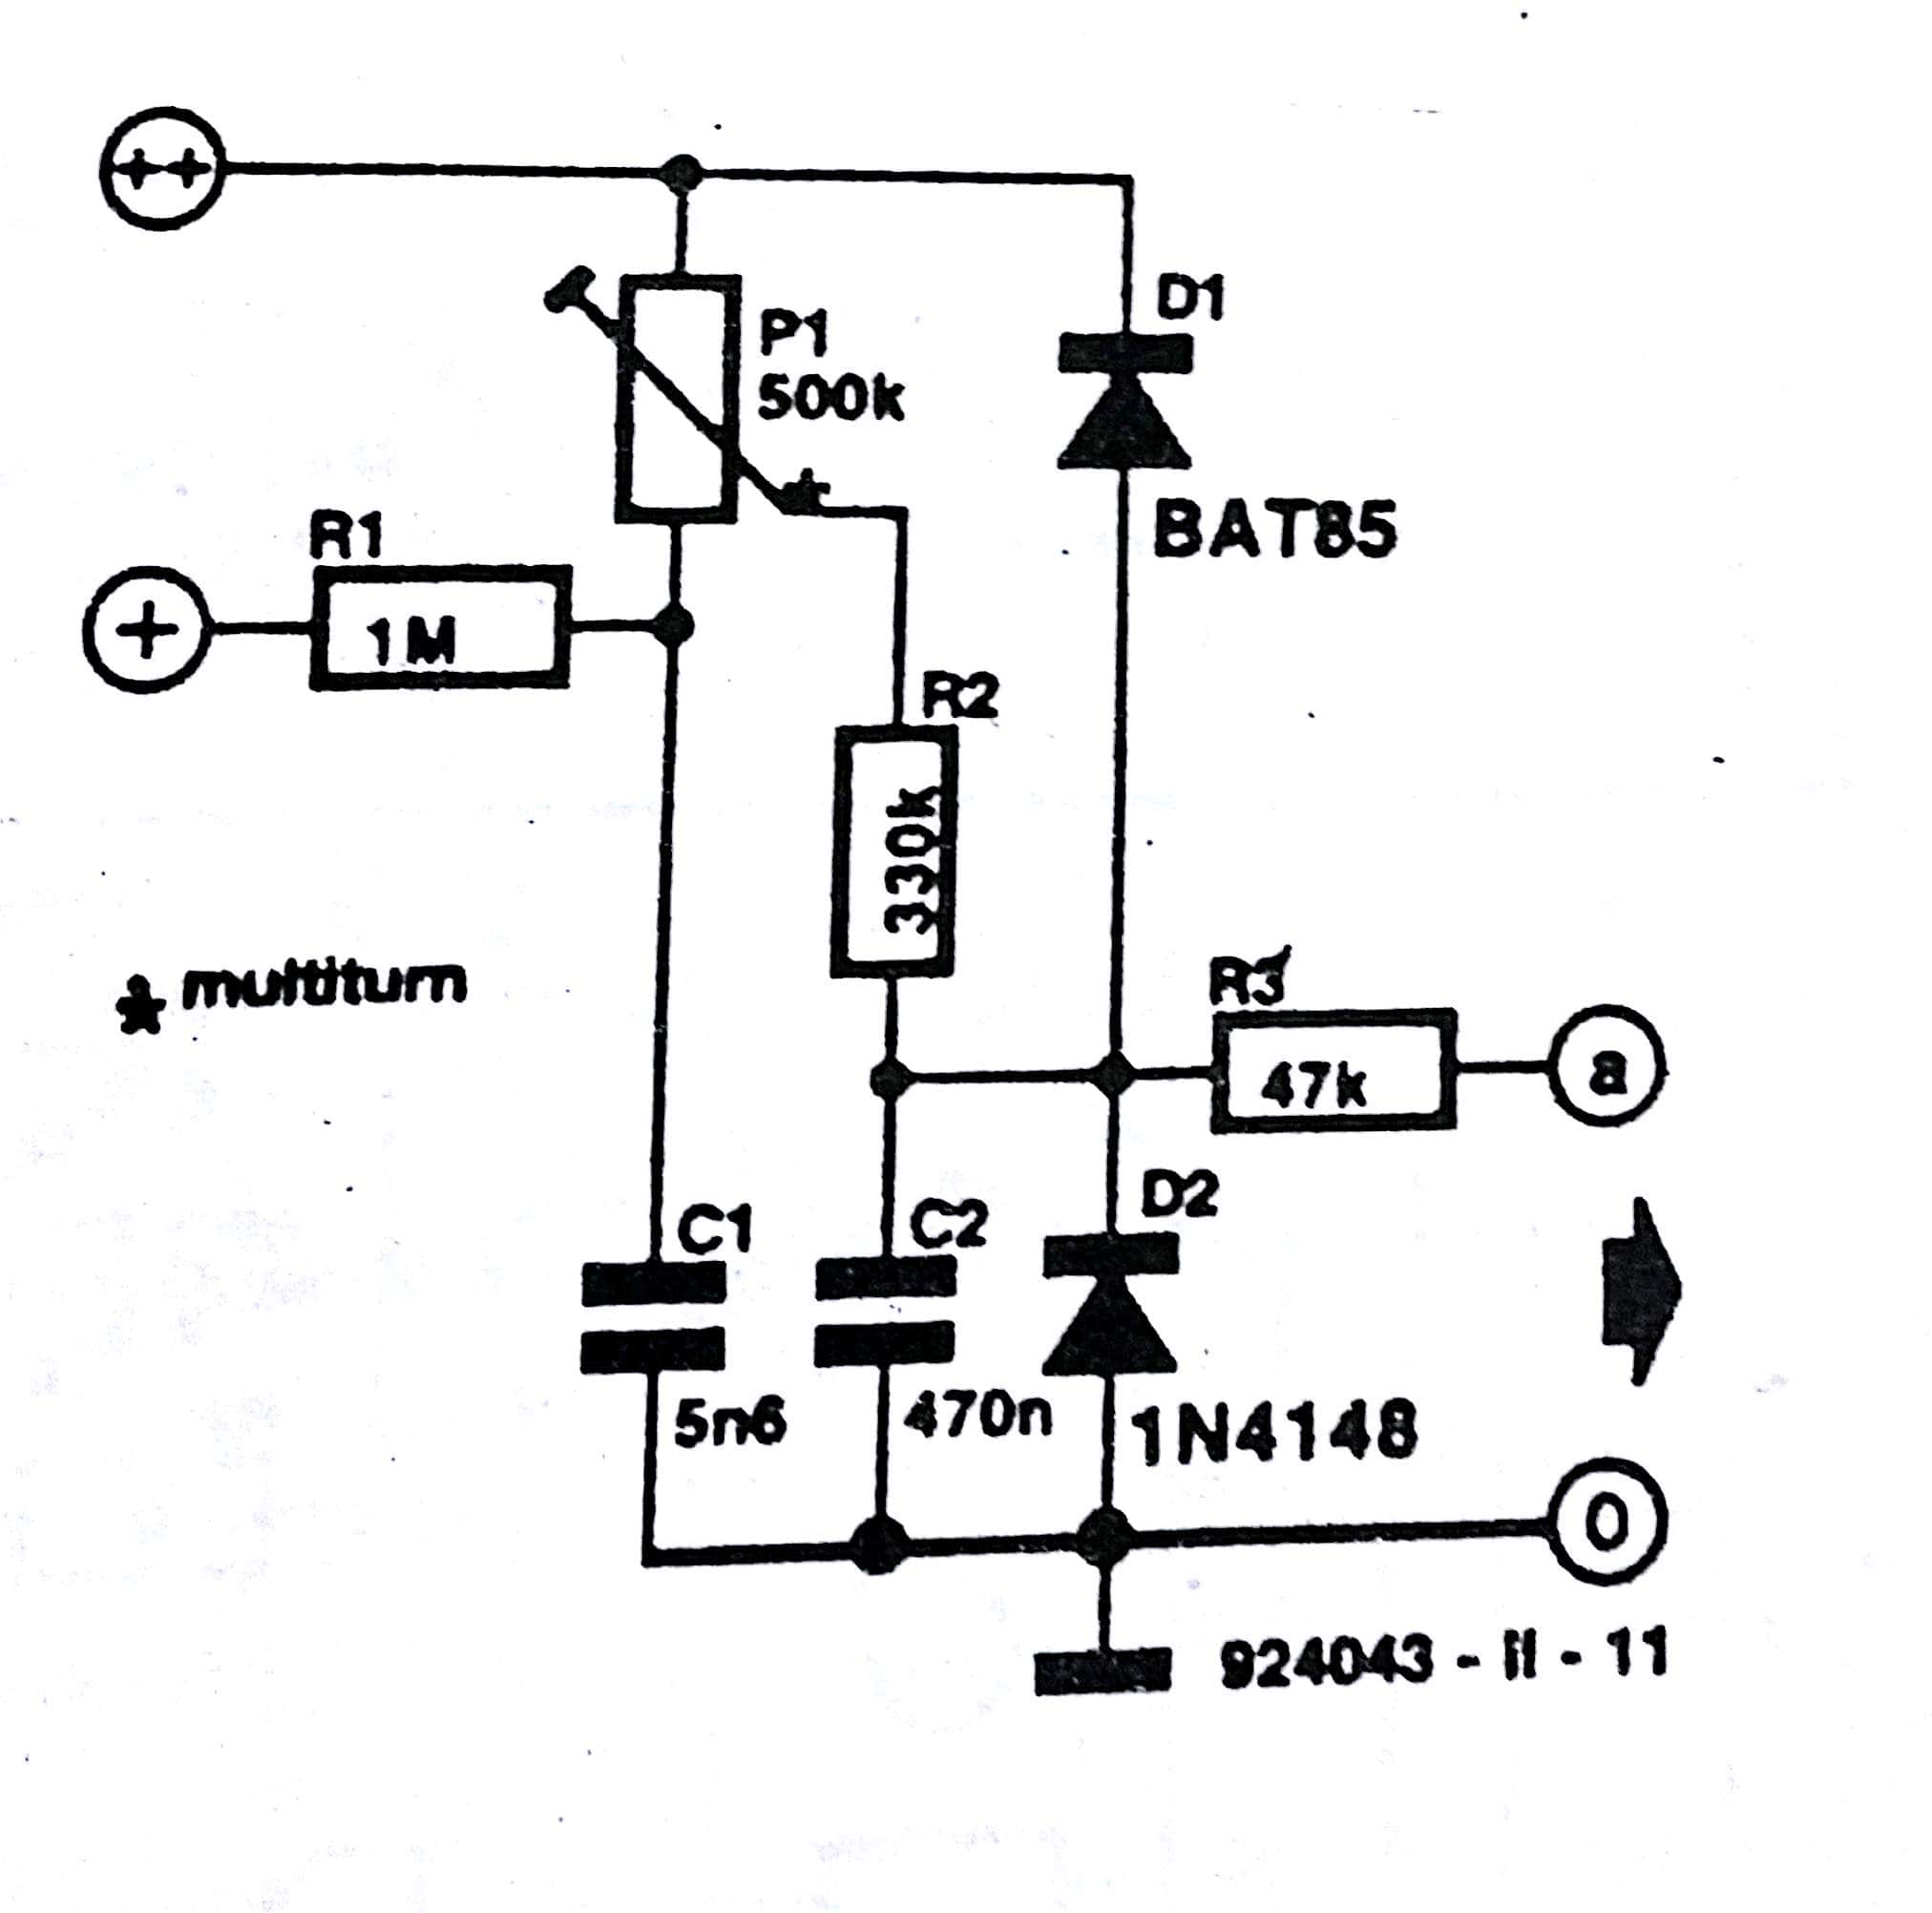 Low Battery Indicator Circuit Diagram 555timer Alternating Blinking Led Issue The In Fig 2 Raises Negative Voltage To Above Earth Level Note That Because Of Loading Its Output R6